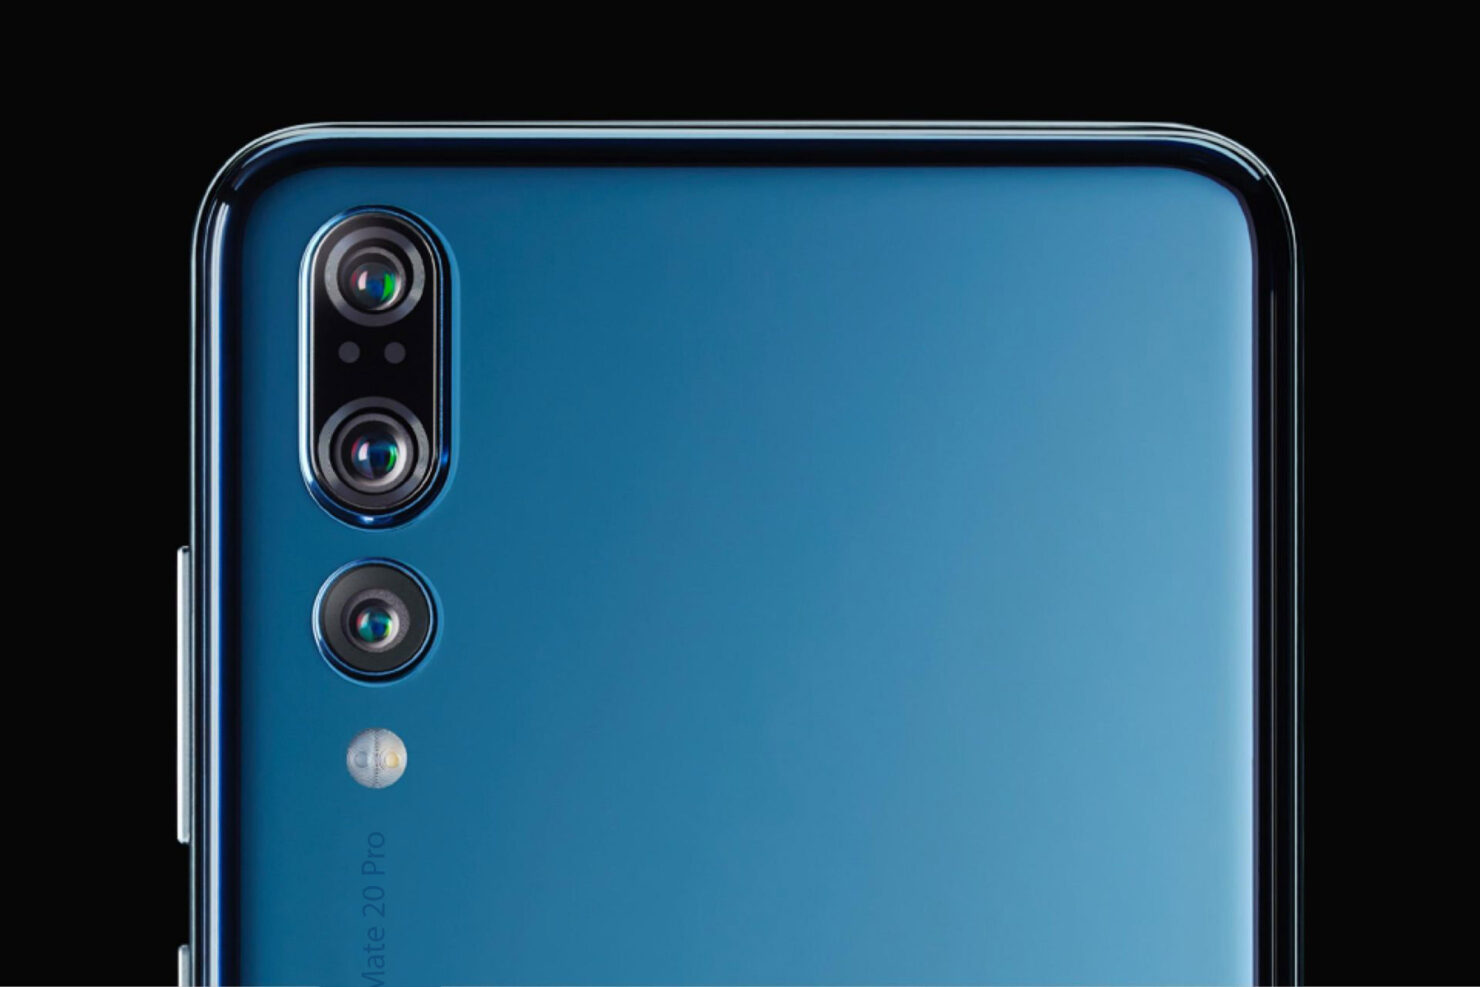 Huawei Mate 20 real life image and schematics